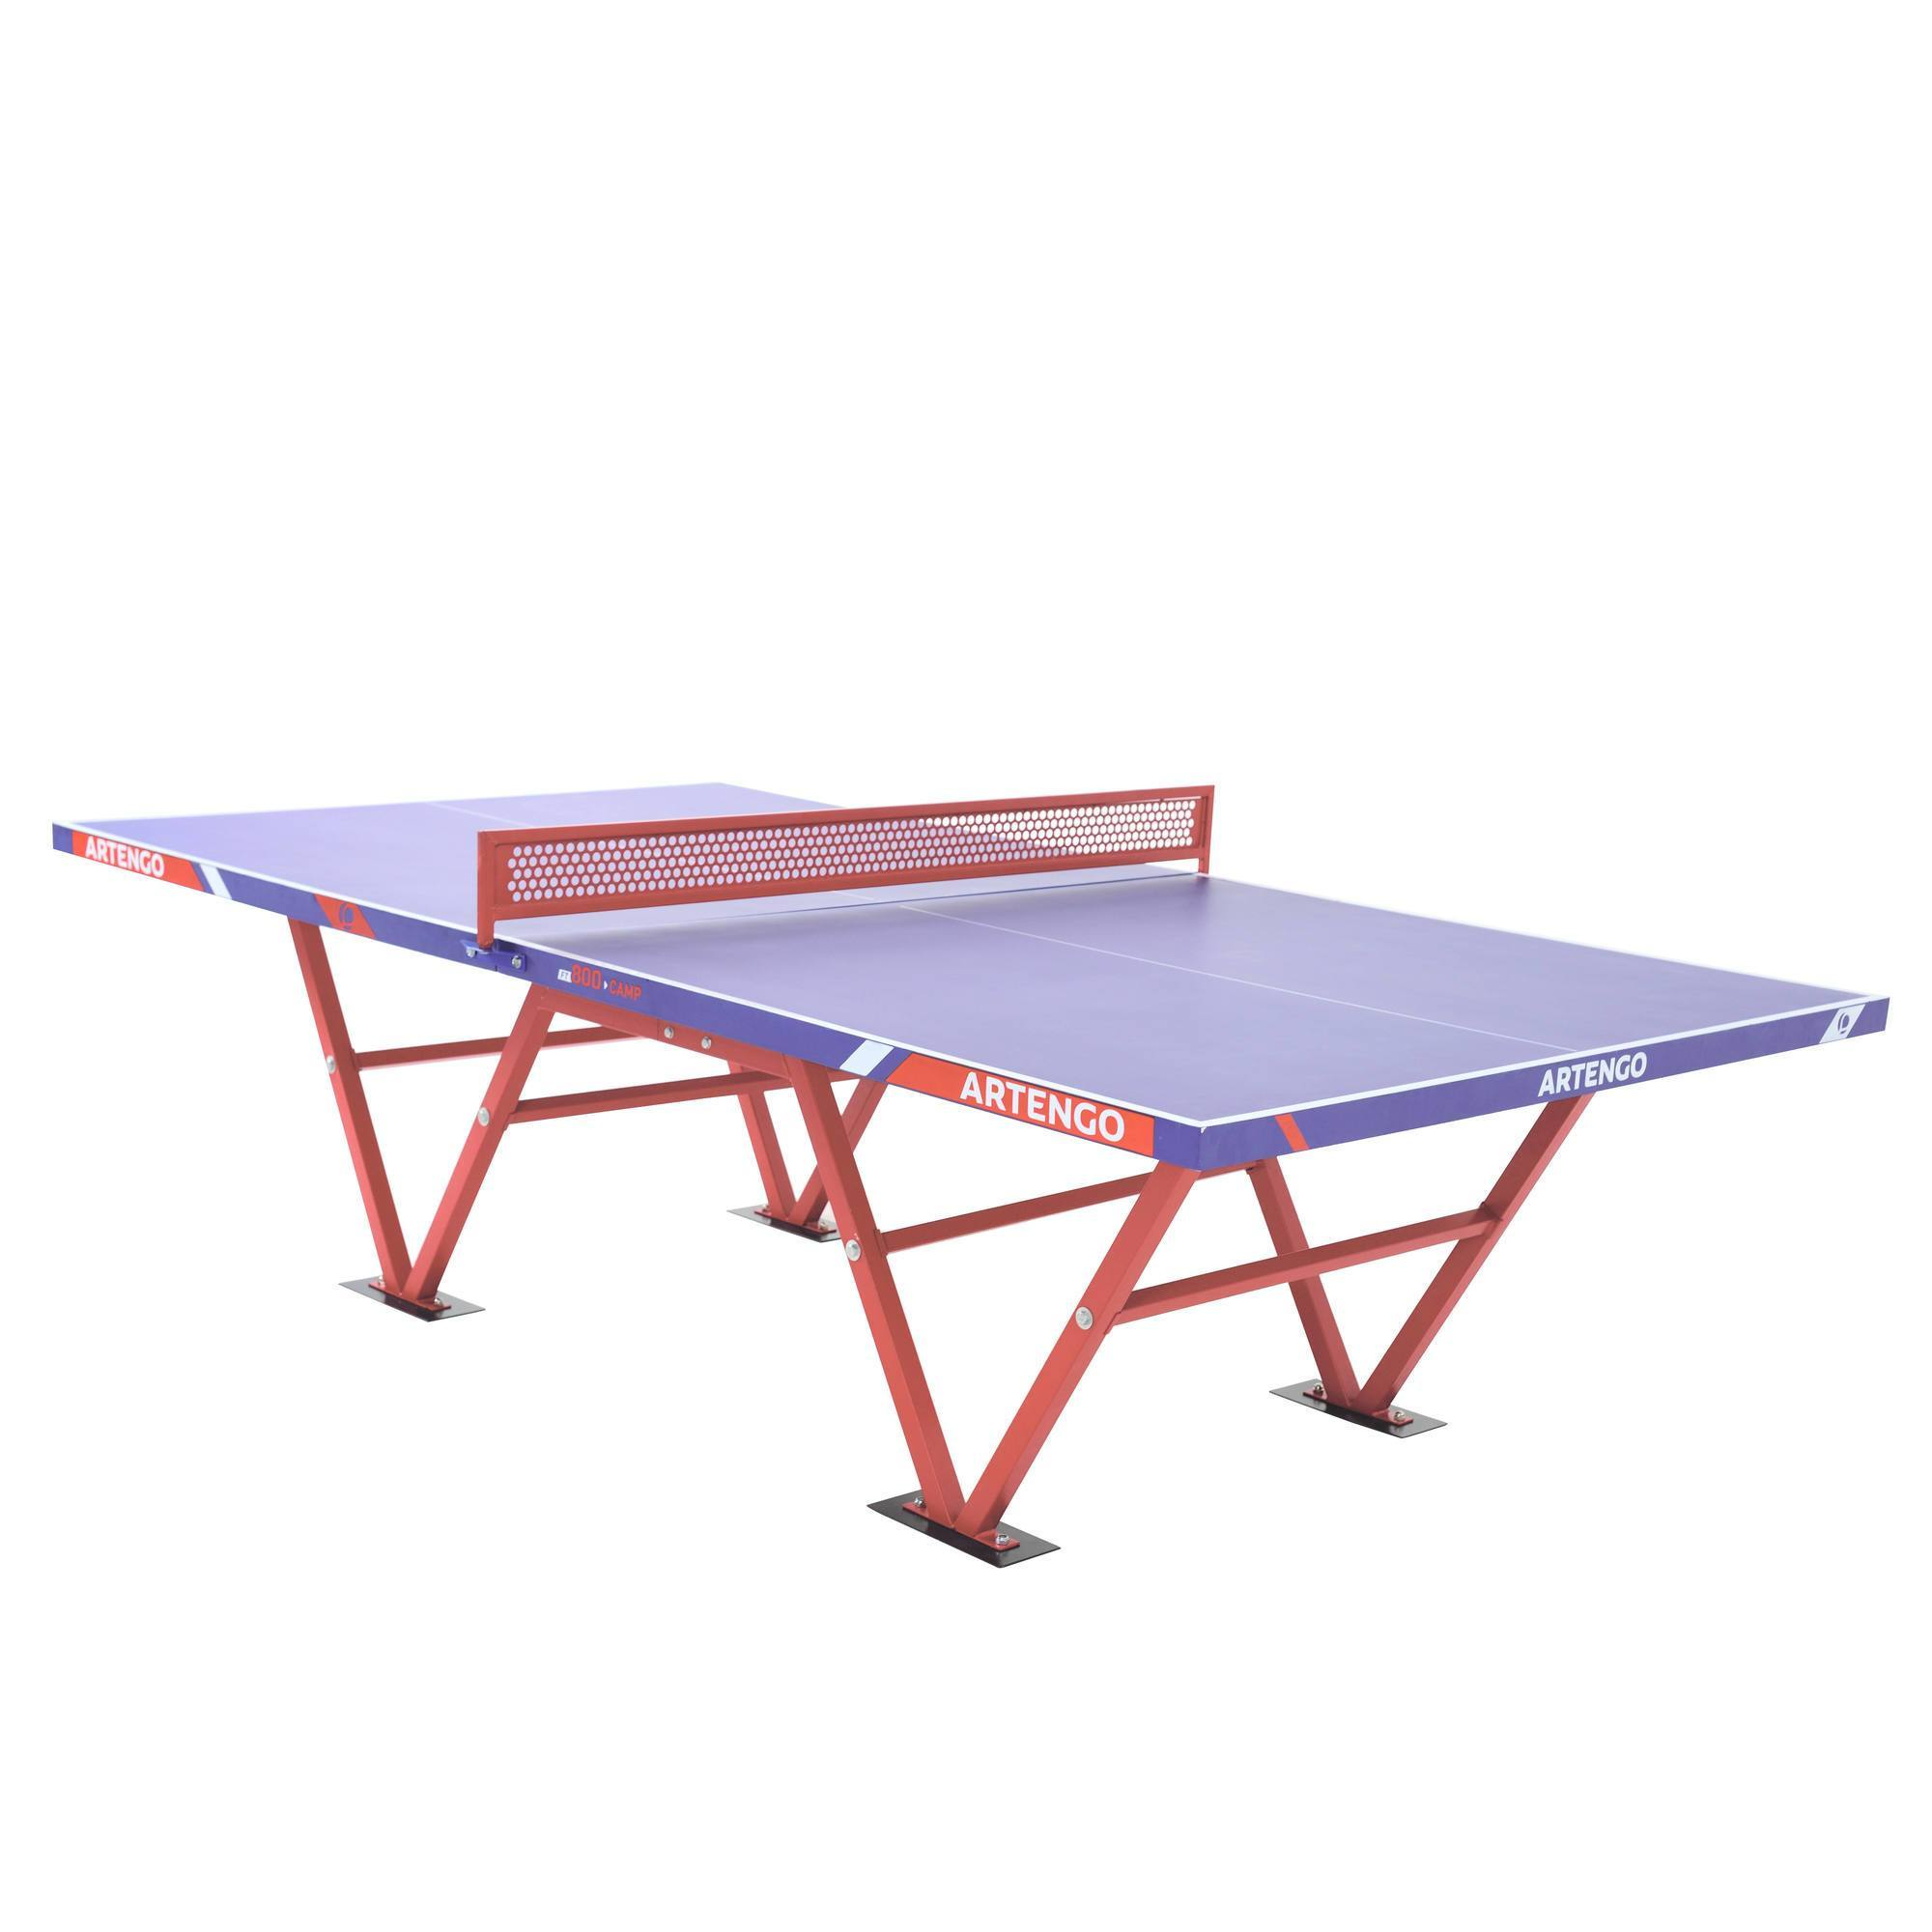 Table de ping pong pour collectivites artengo ft800 camp - Table de ping pong exterieur pour collectivite ...